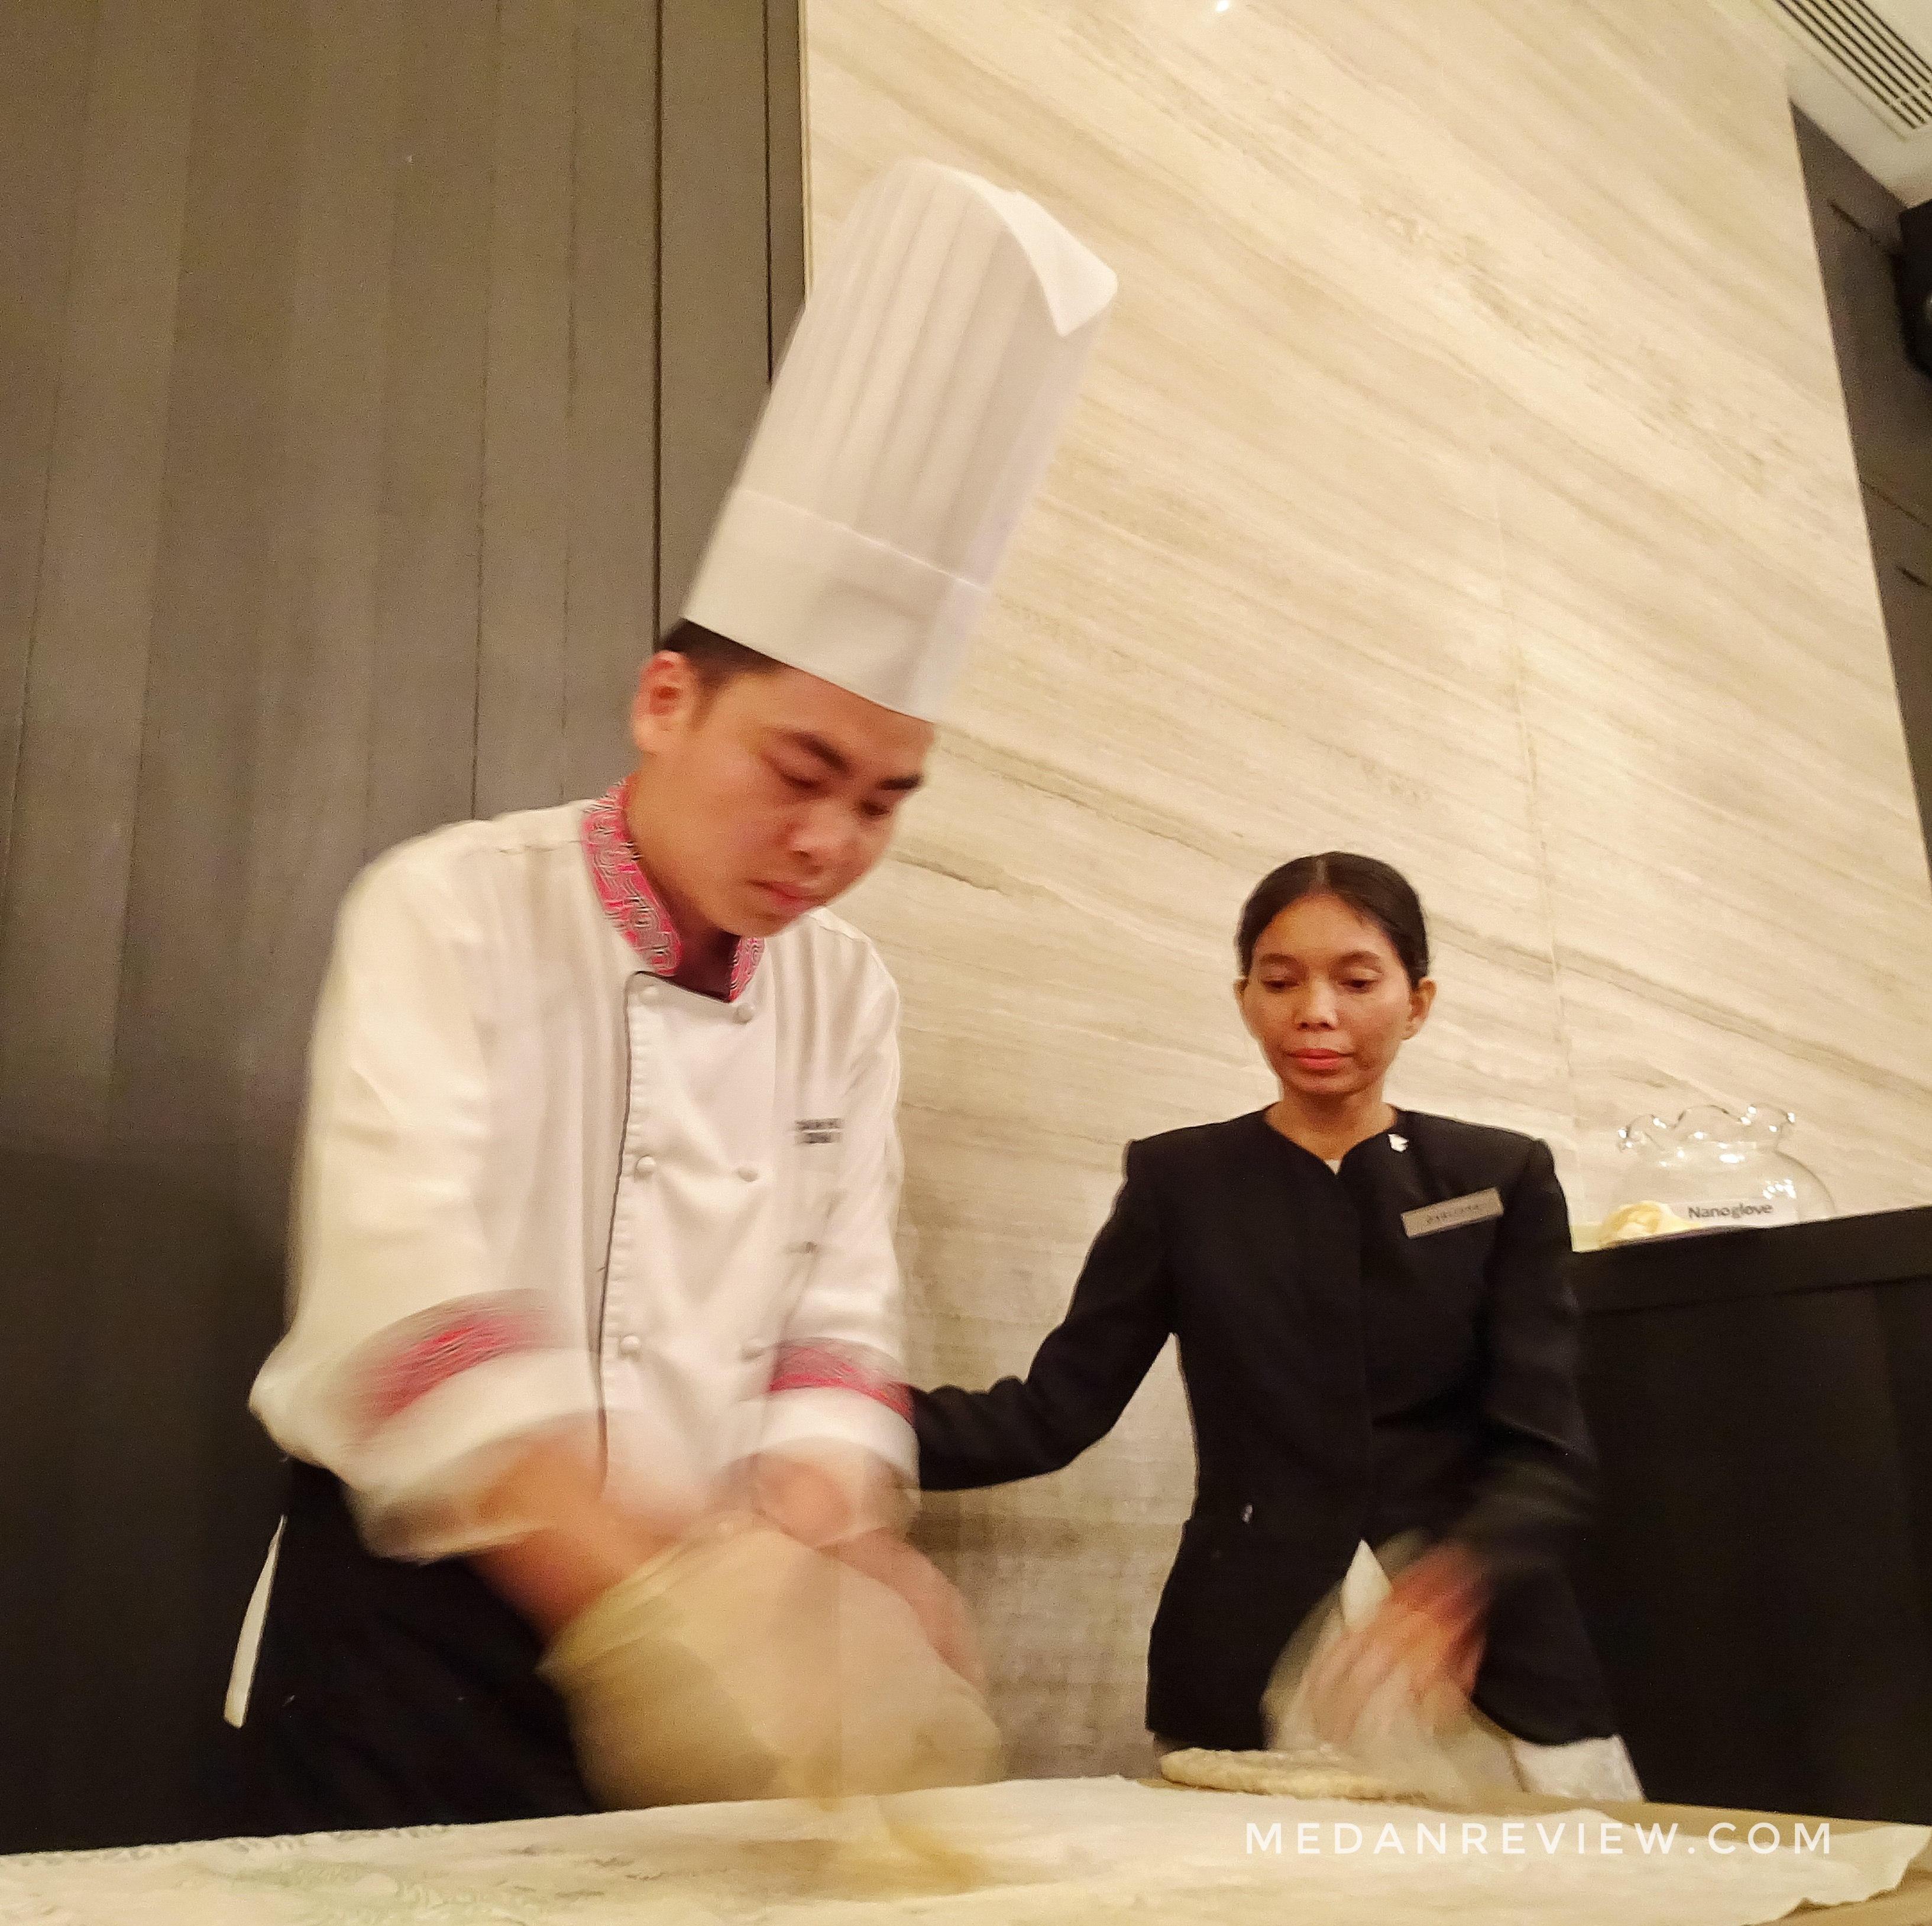 Demo Chef Can Huan Huang Pembuatan Pastry Octopus Pictographic